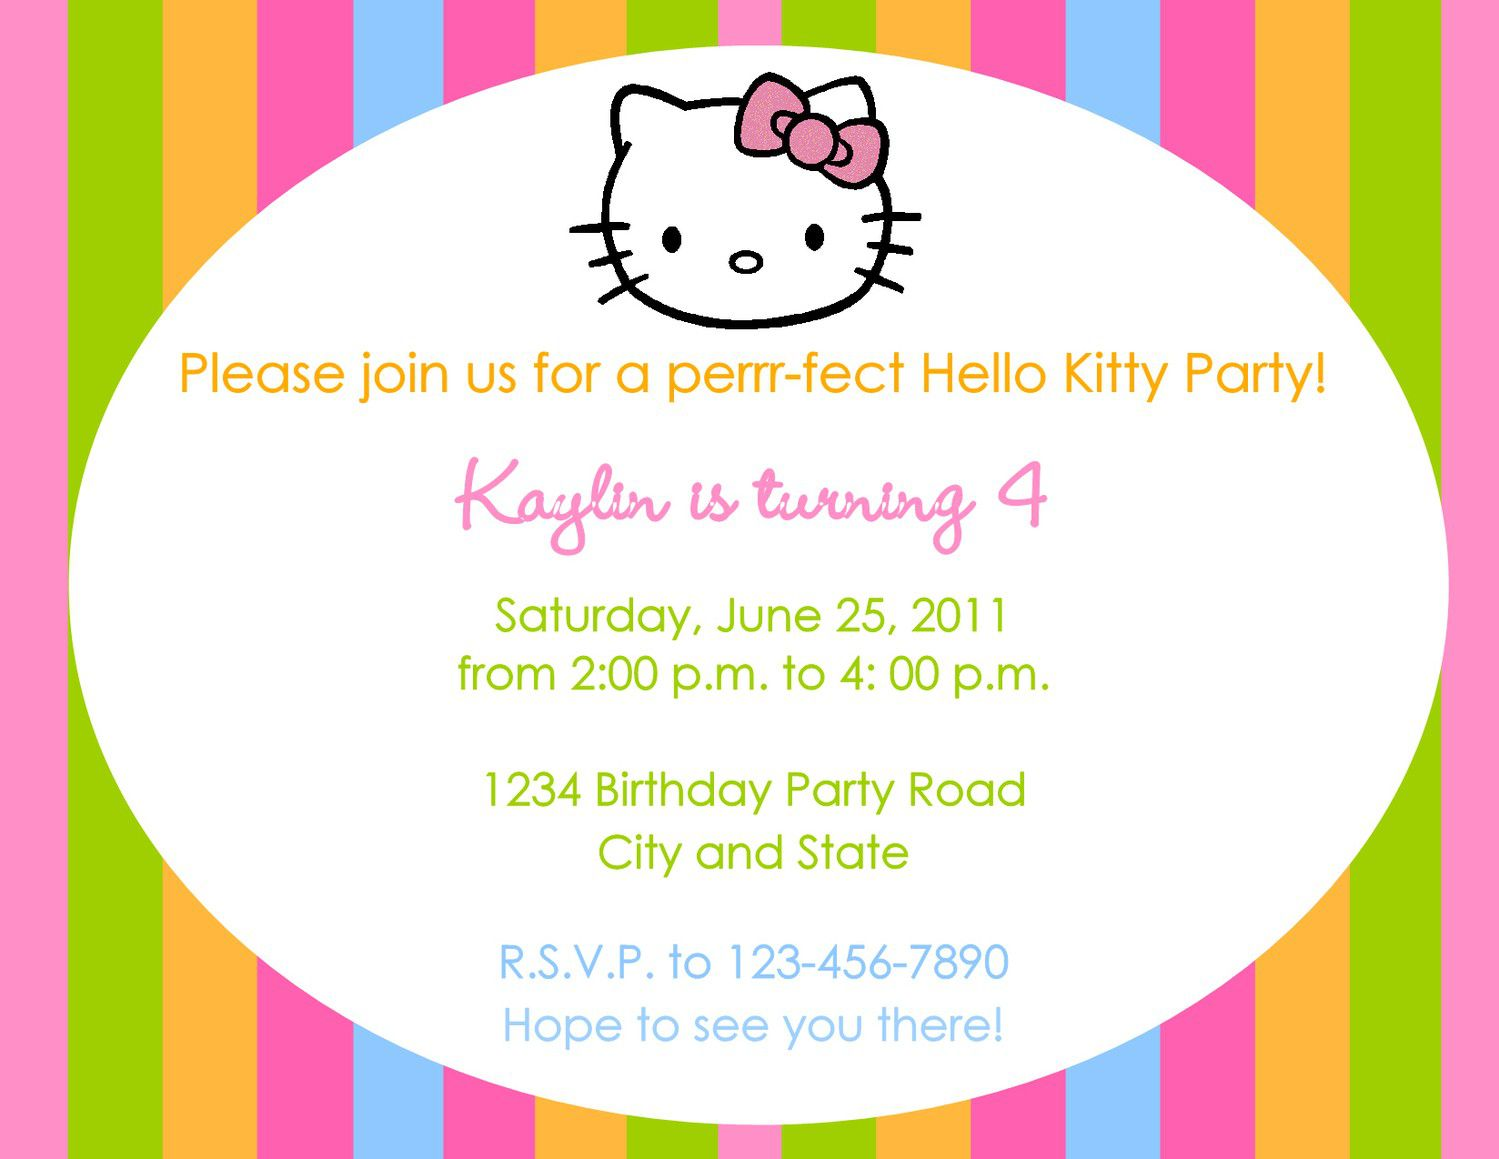 birthday invitation wording for 11 year old ; birthday-costume-party-invitation-wordingbirthday-invitation-wording-for-kids